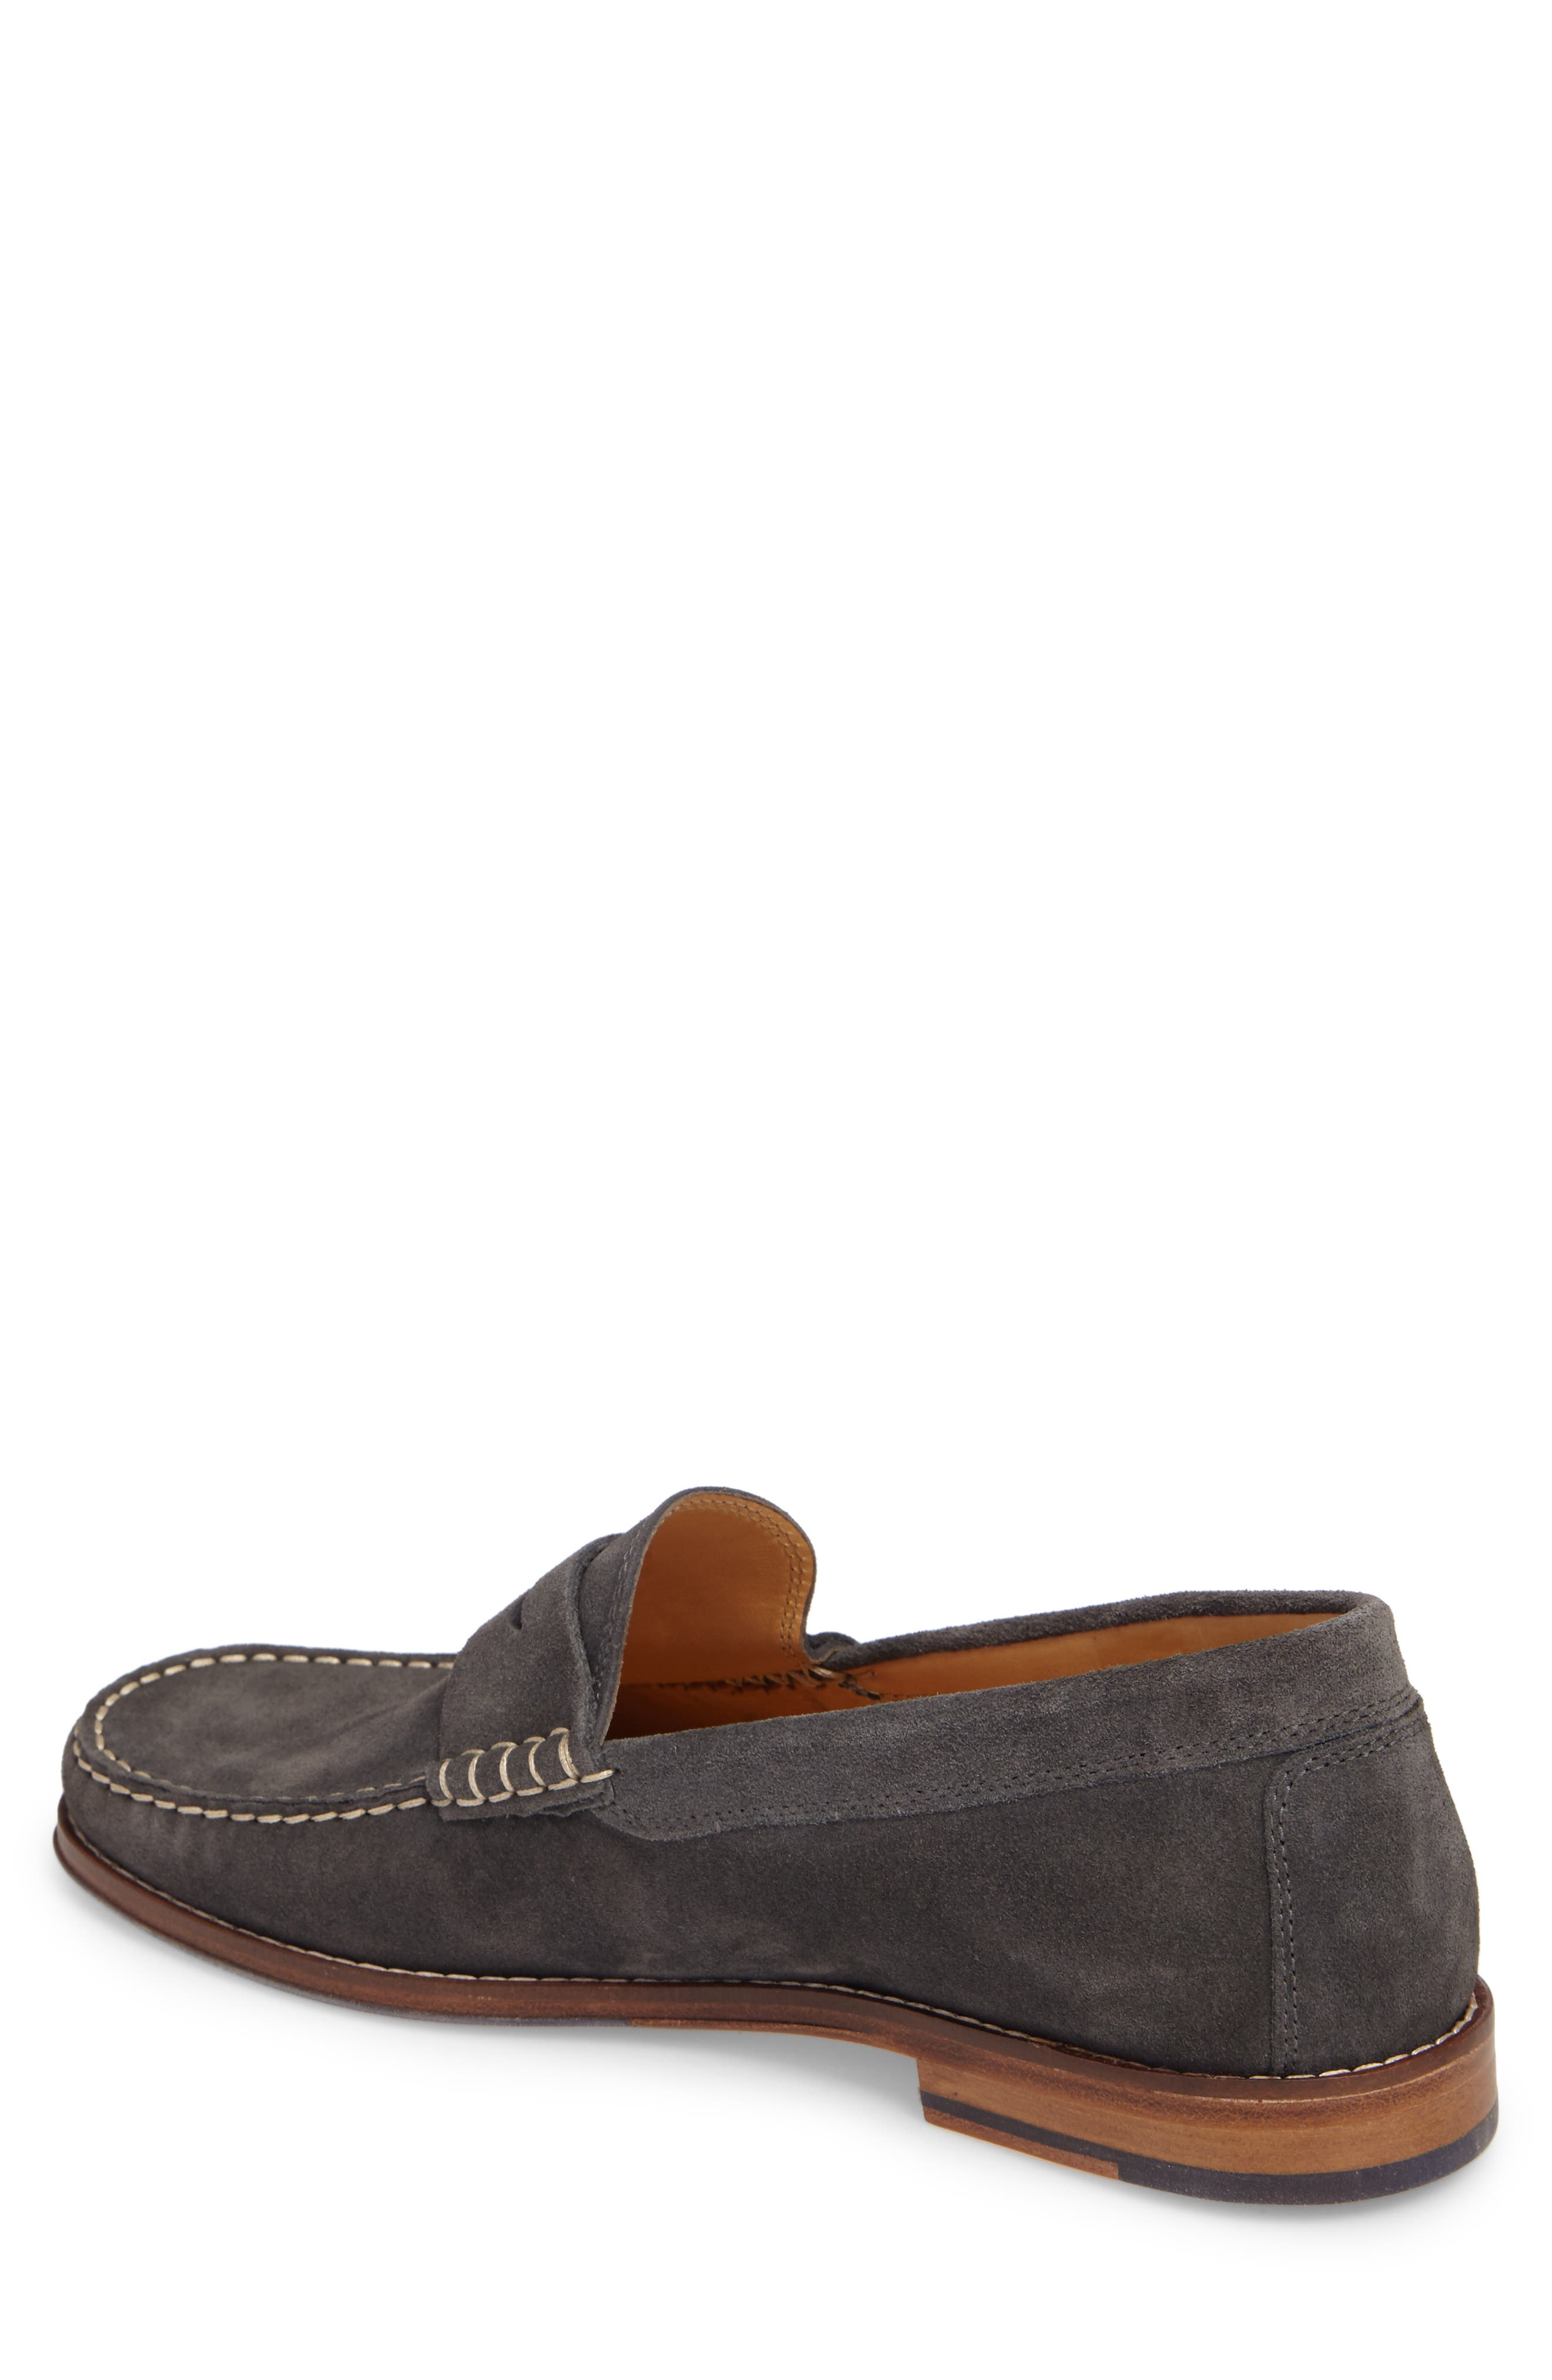 Ripley Penny Loafer,                             Alternate thumbnail 2, color,                             Grey Leather